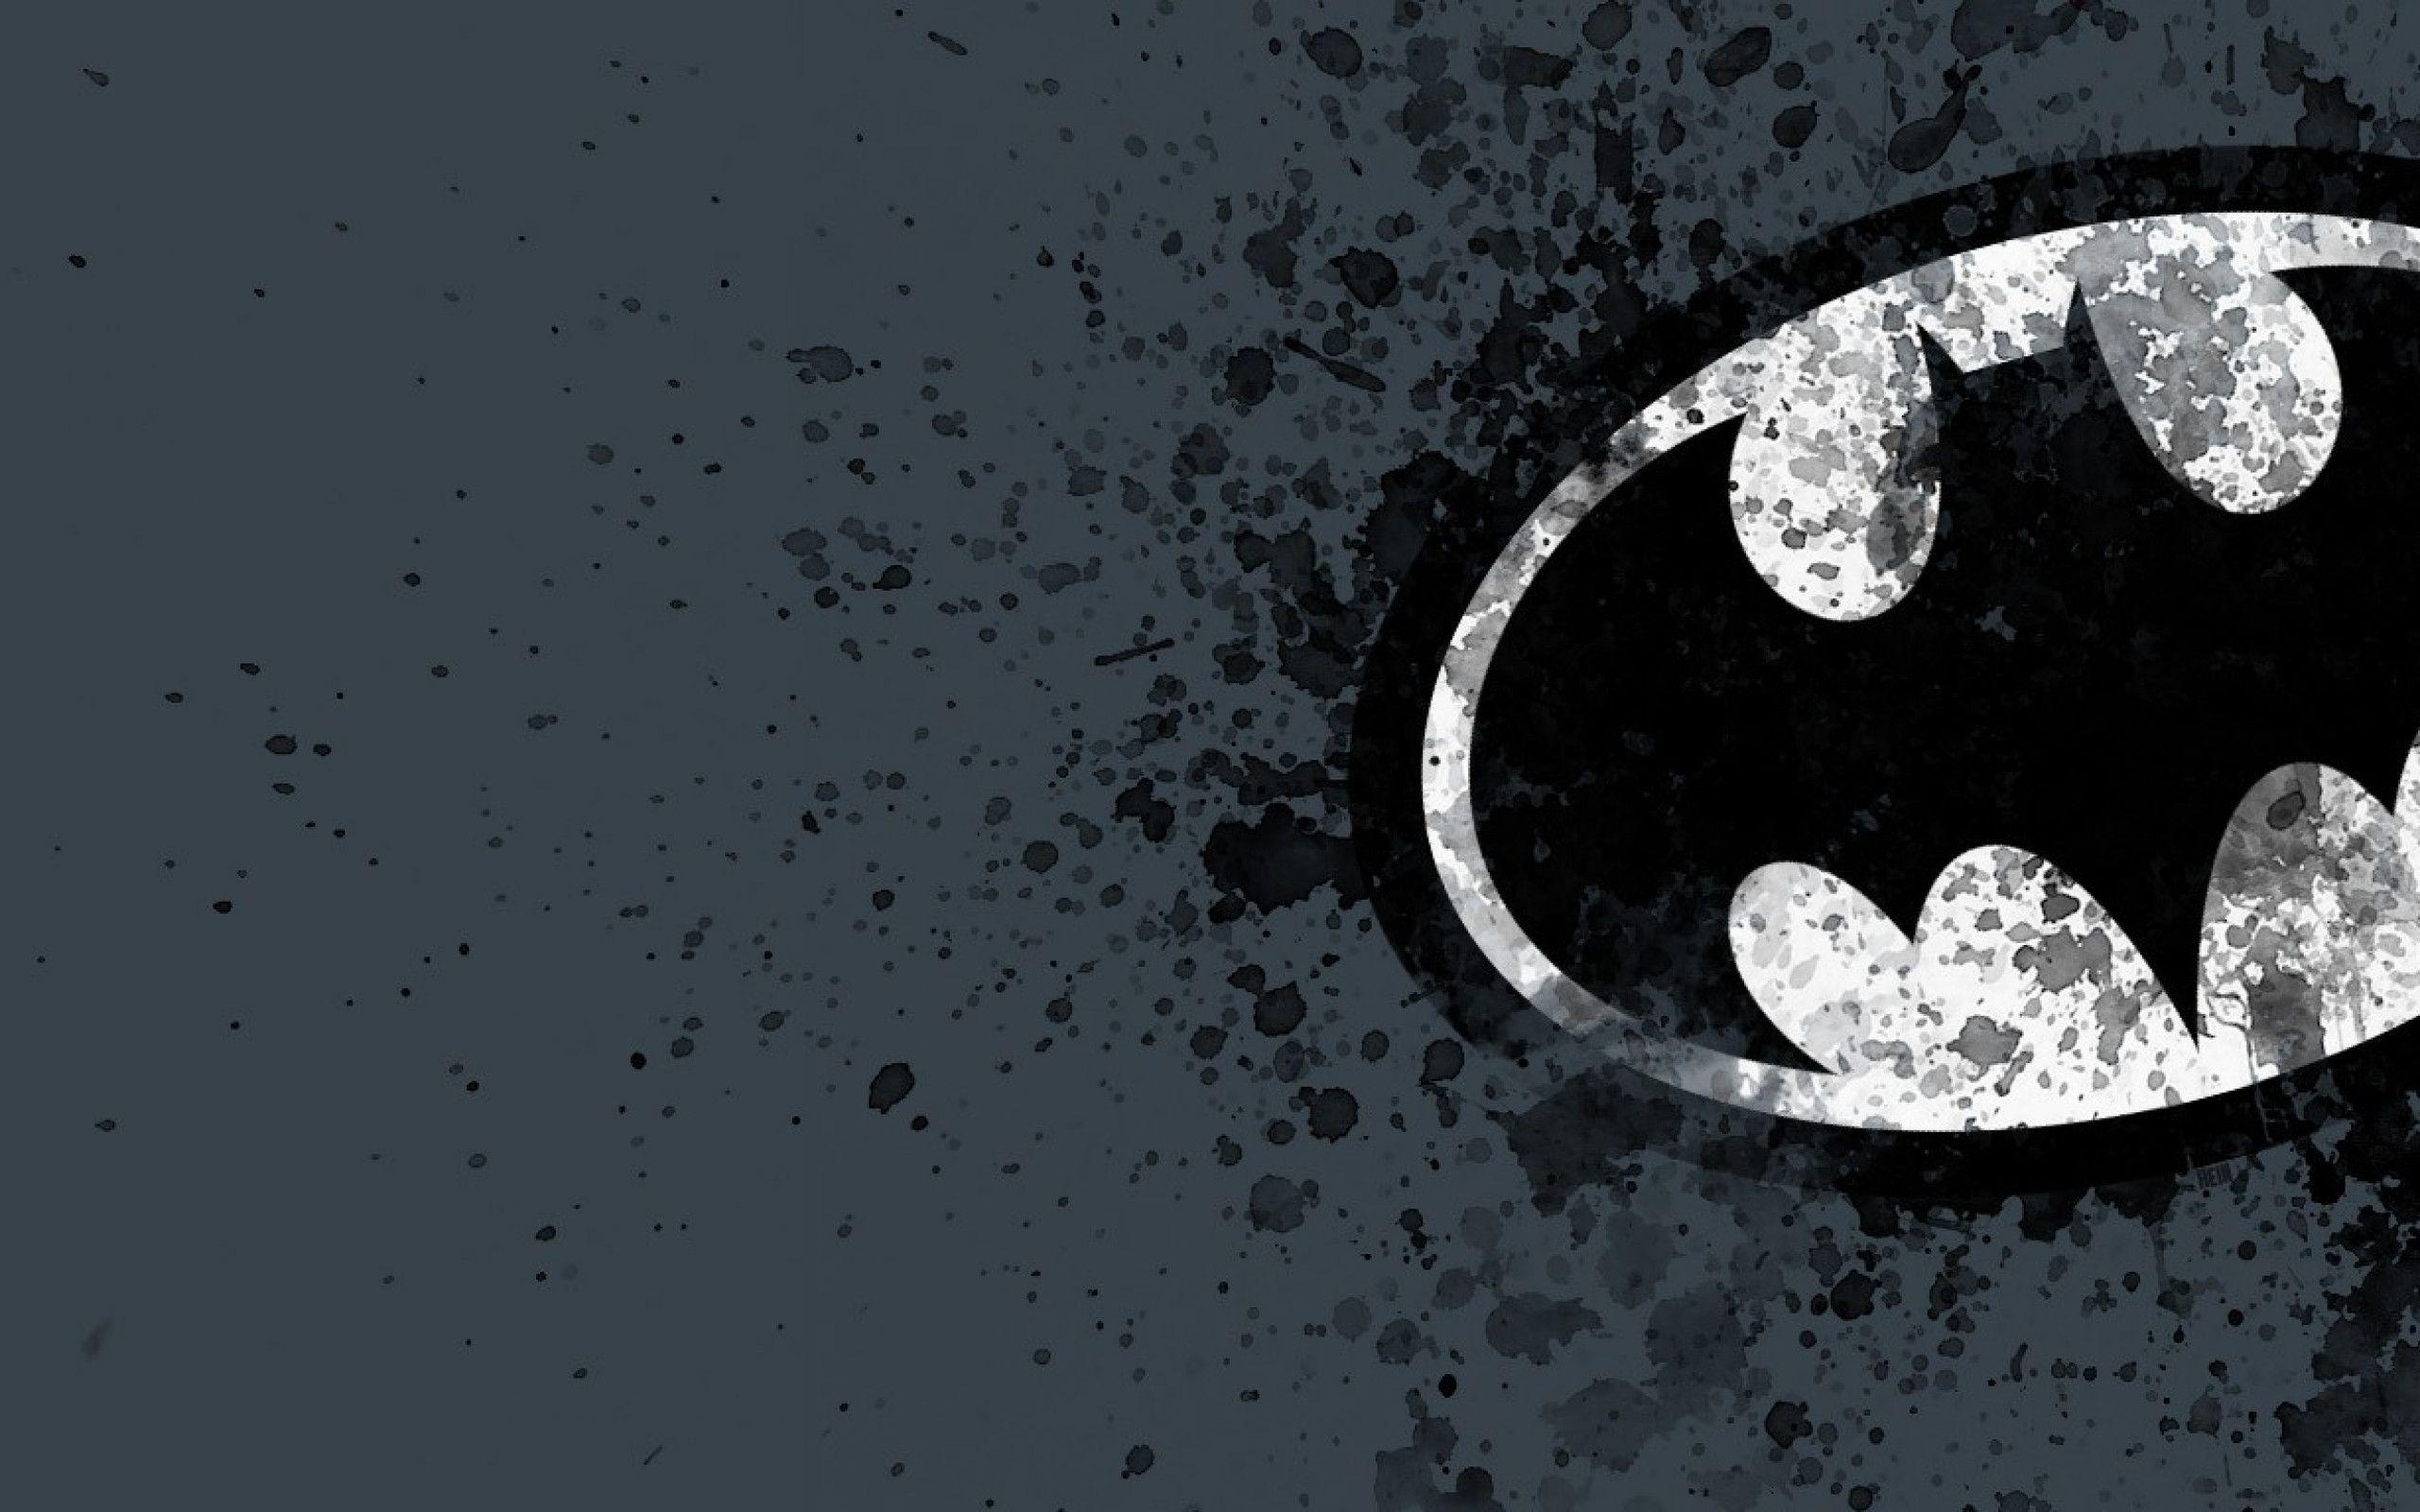 Batman Wallpapers - Full HD wallpaper search